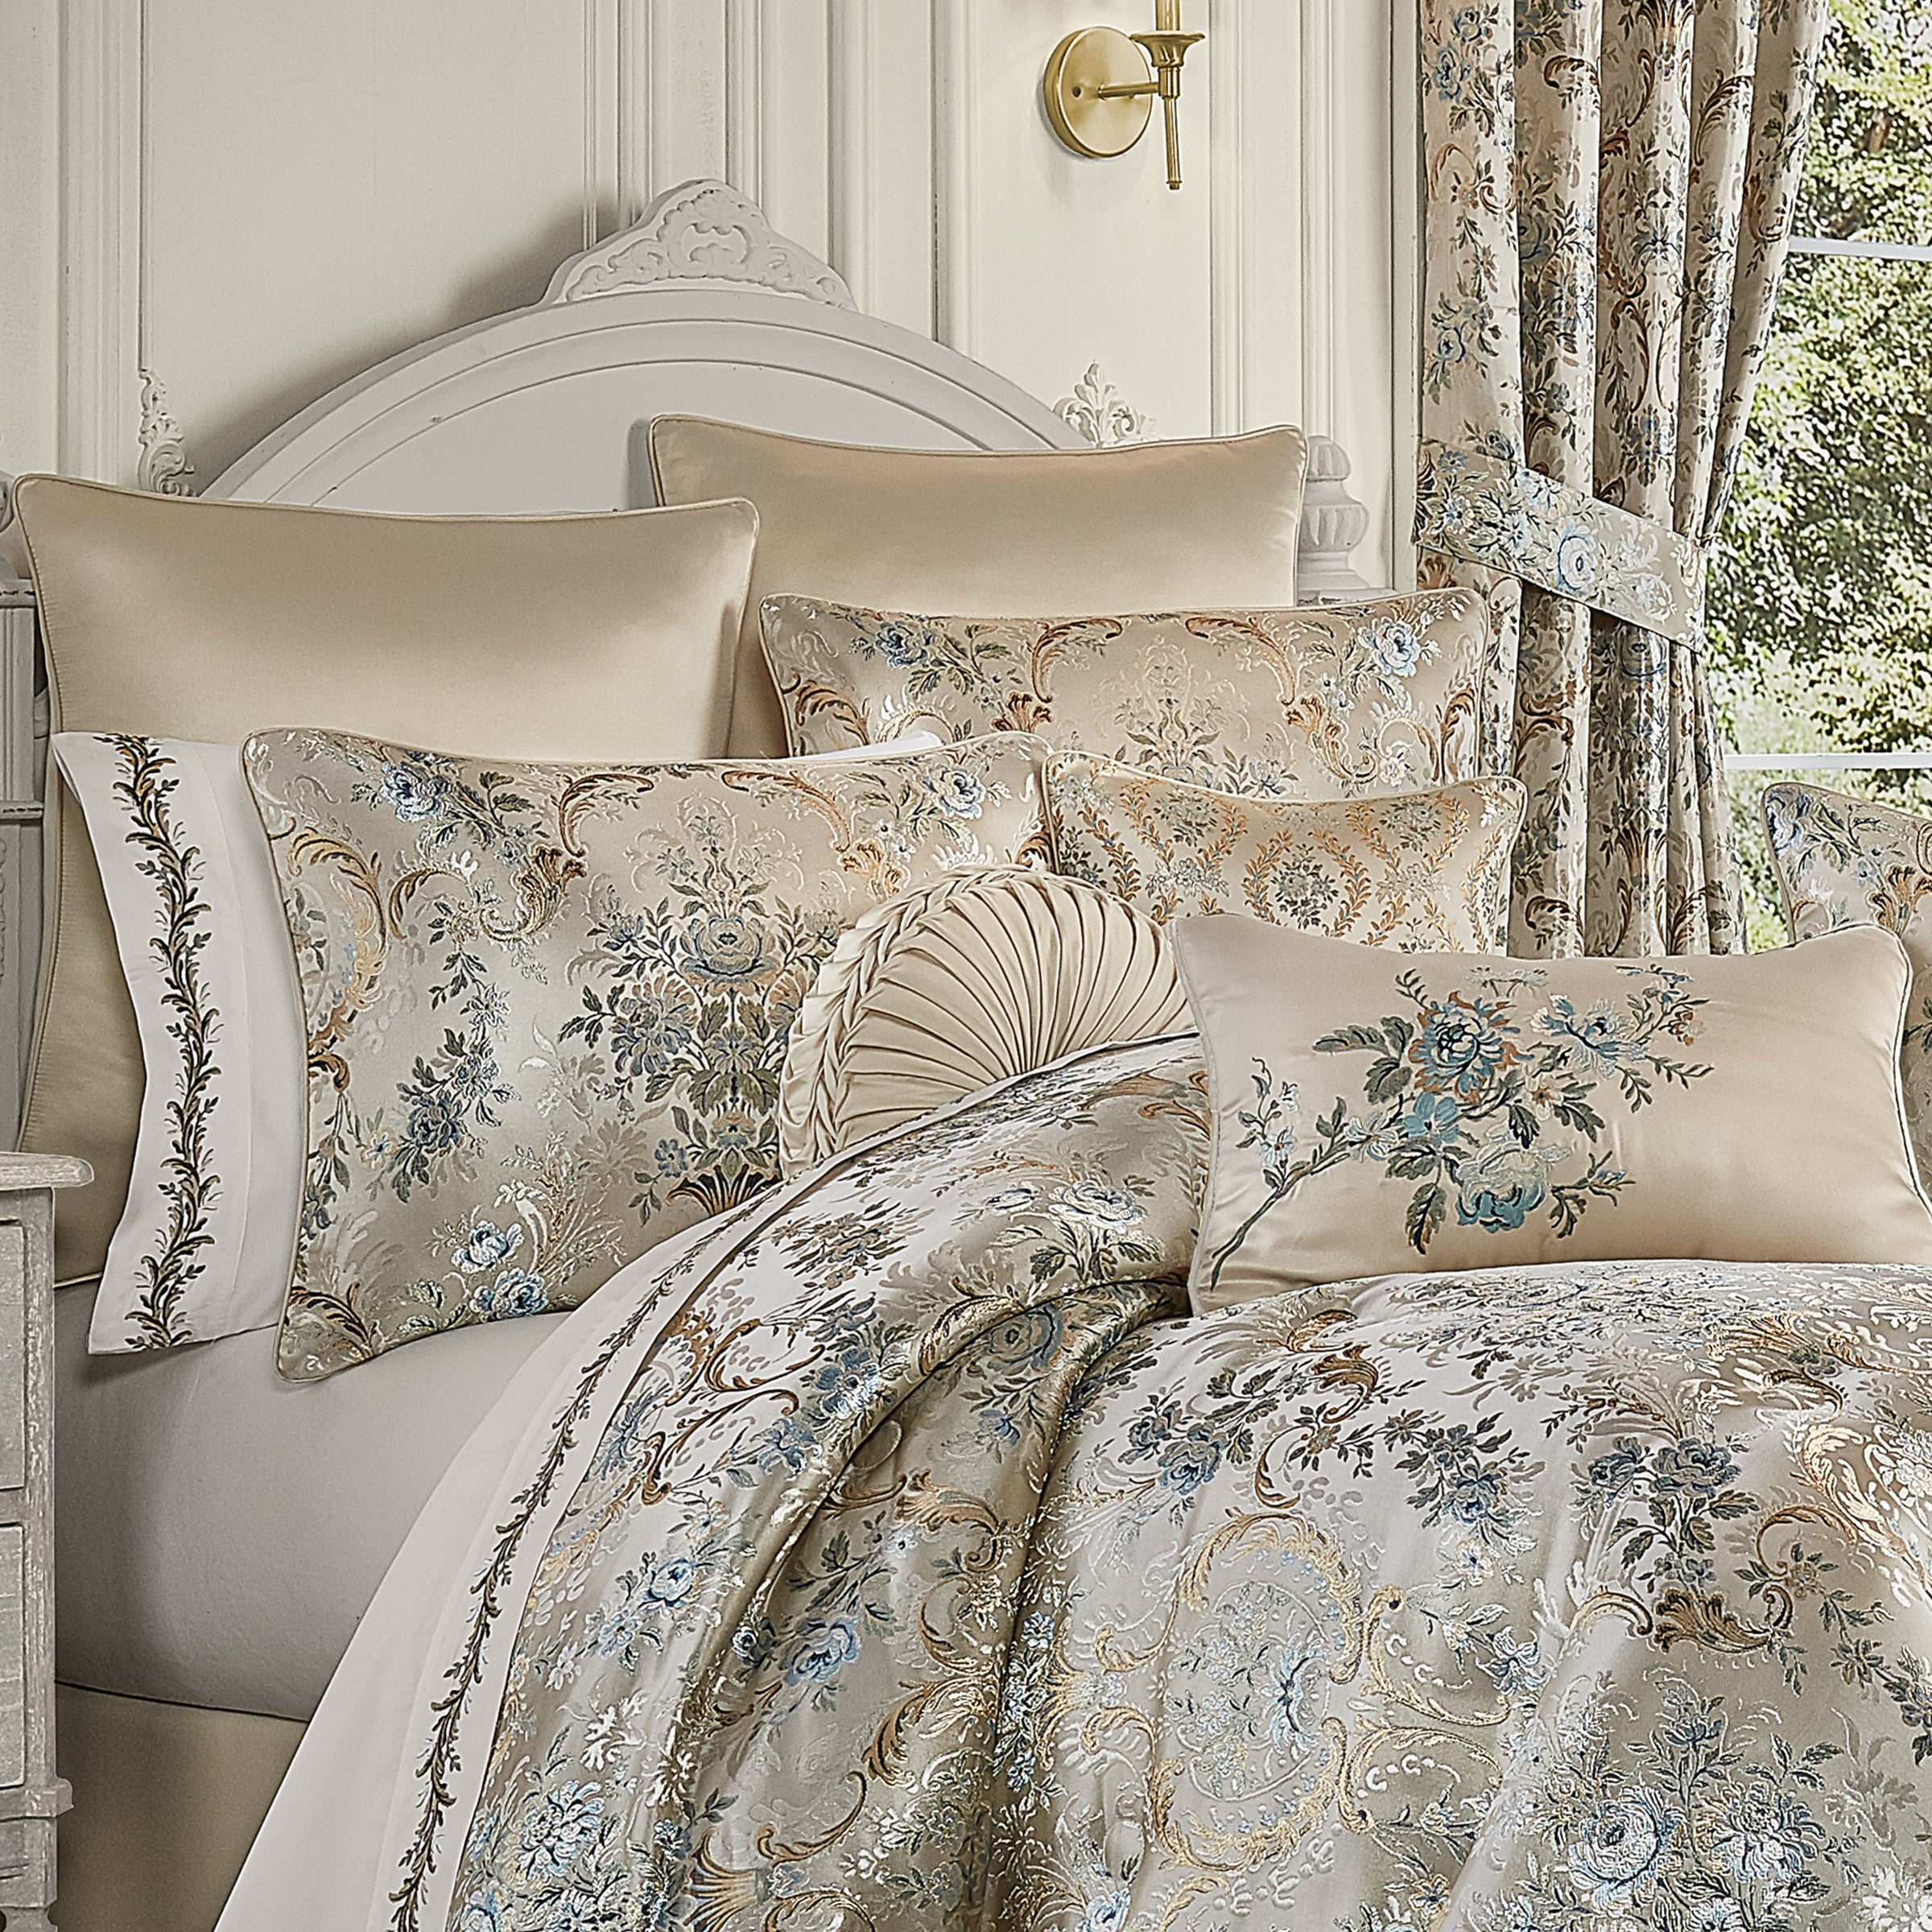 Jacqueline Teal 4-Piece Comforter Set Comforter Sets By J. Queen New York